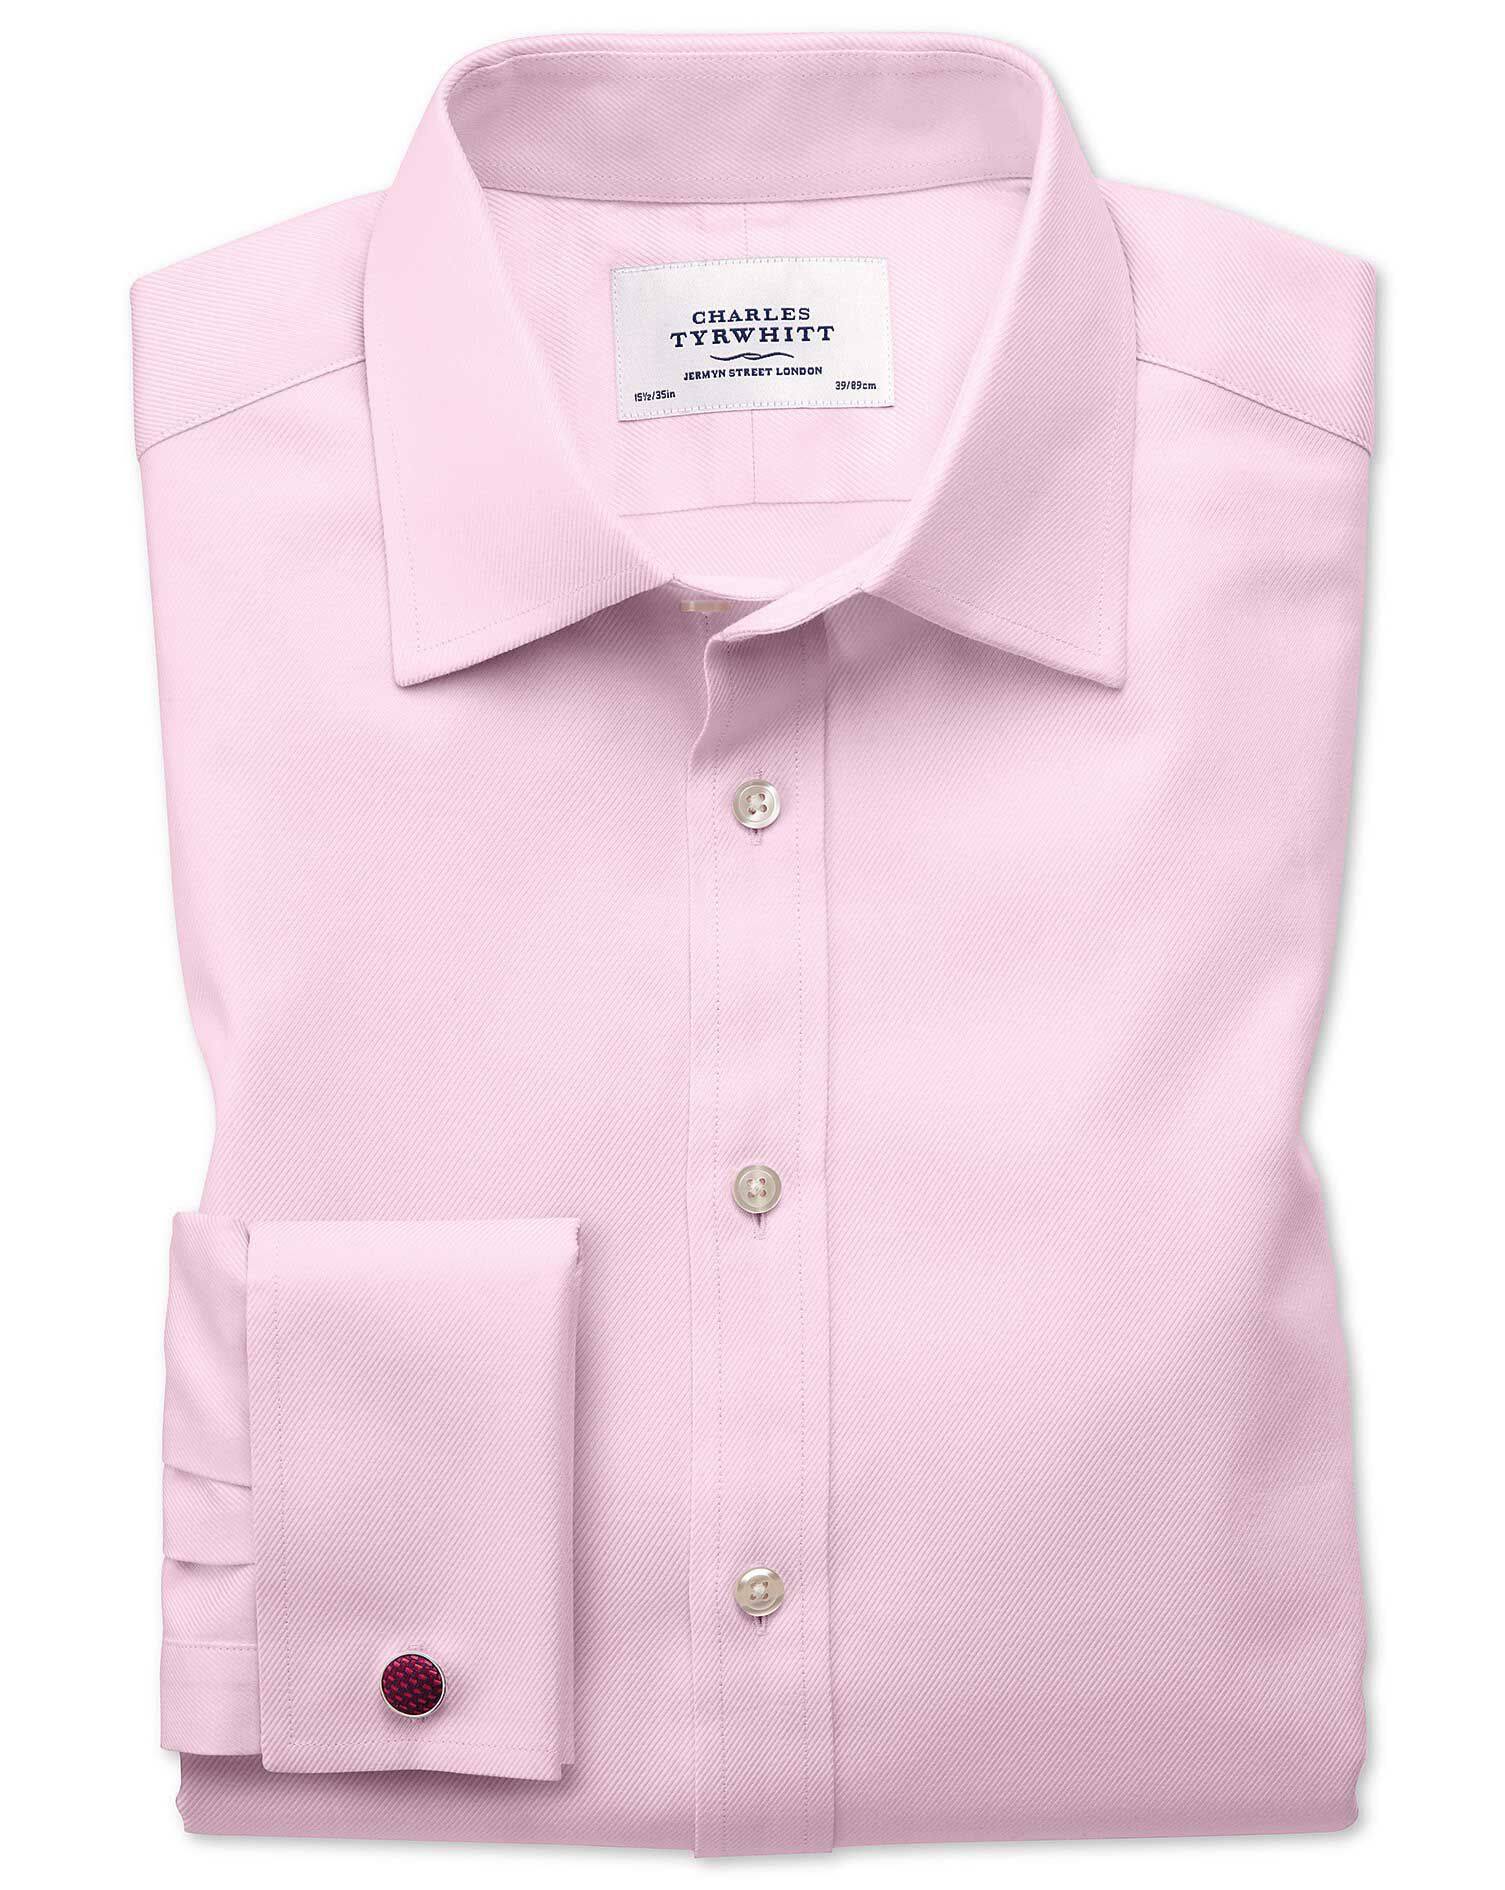 Extra Slim Fit Egyptian Cotton Cavalry Twill Light Pink Formal Shirt Double Cuff Size 15/35 by Charl